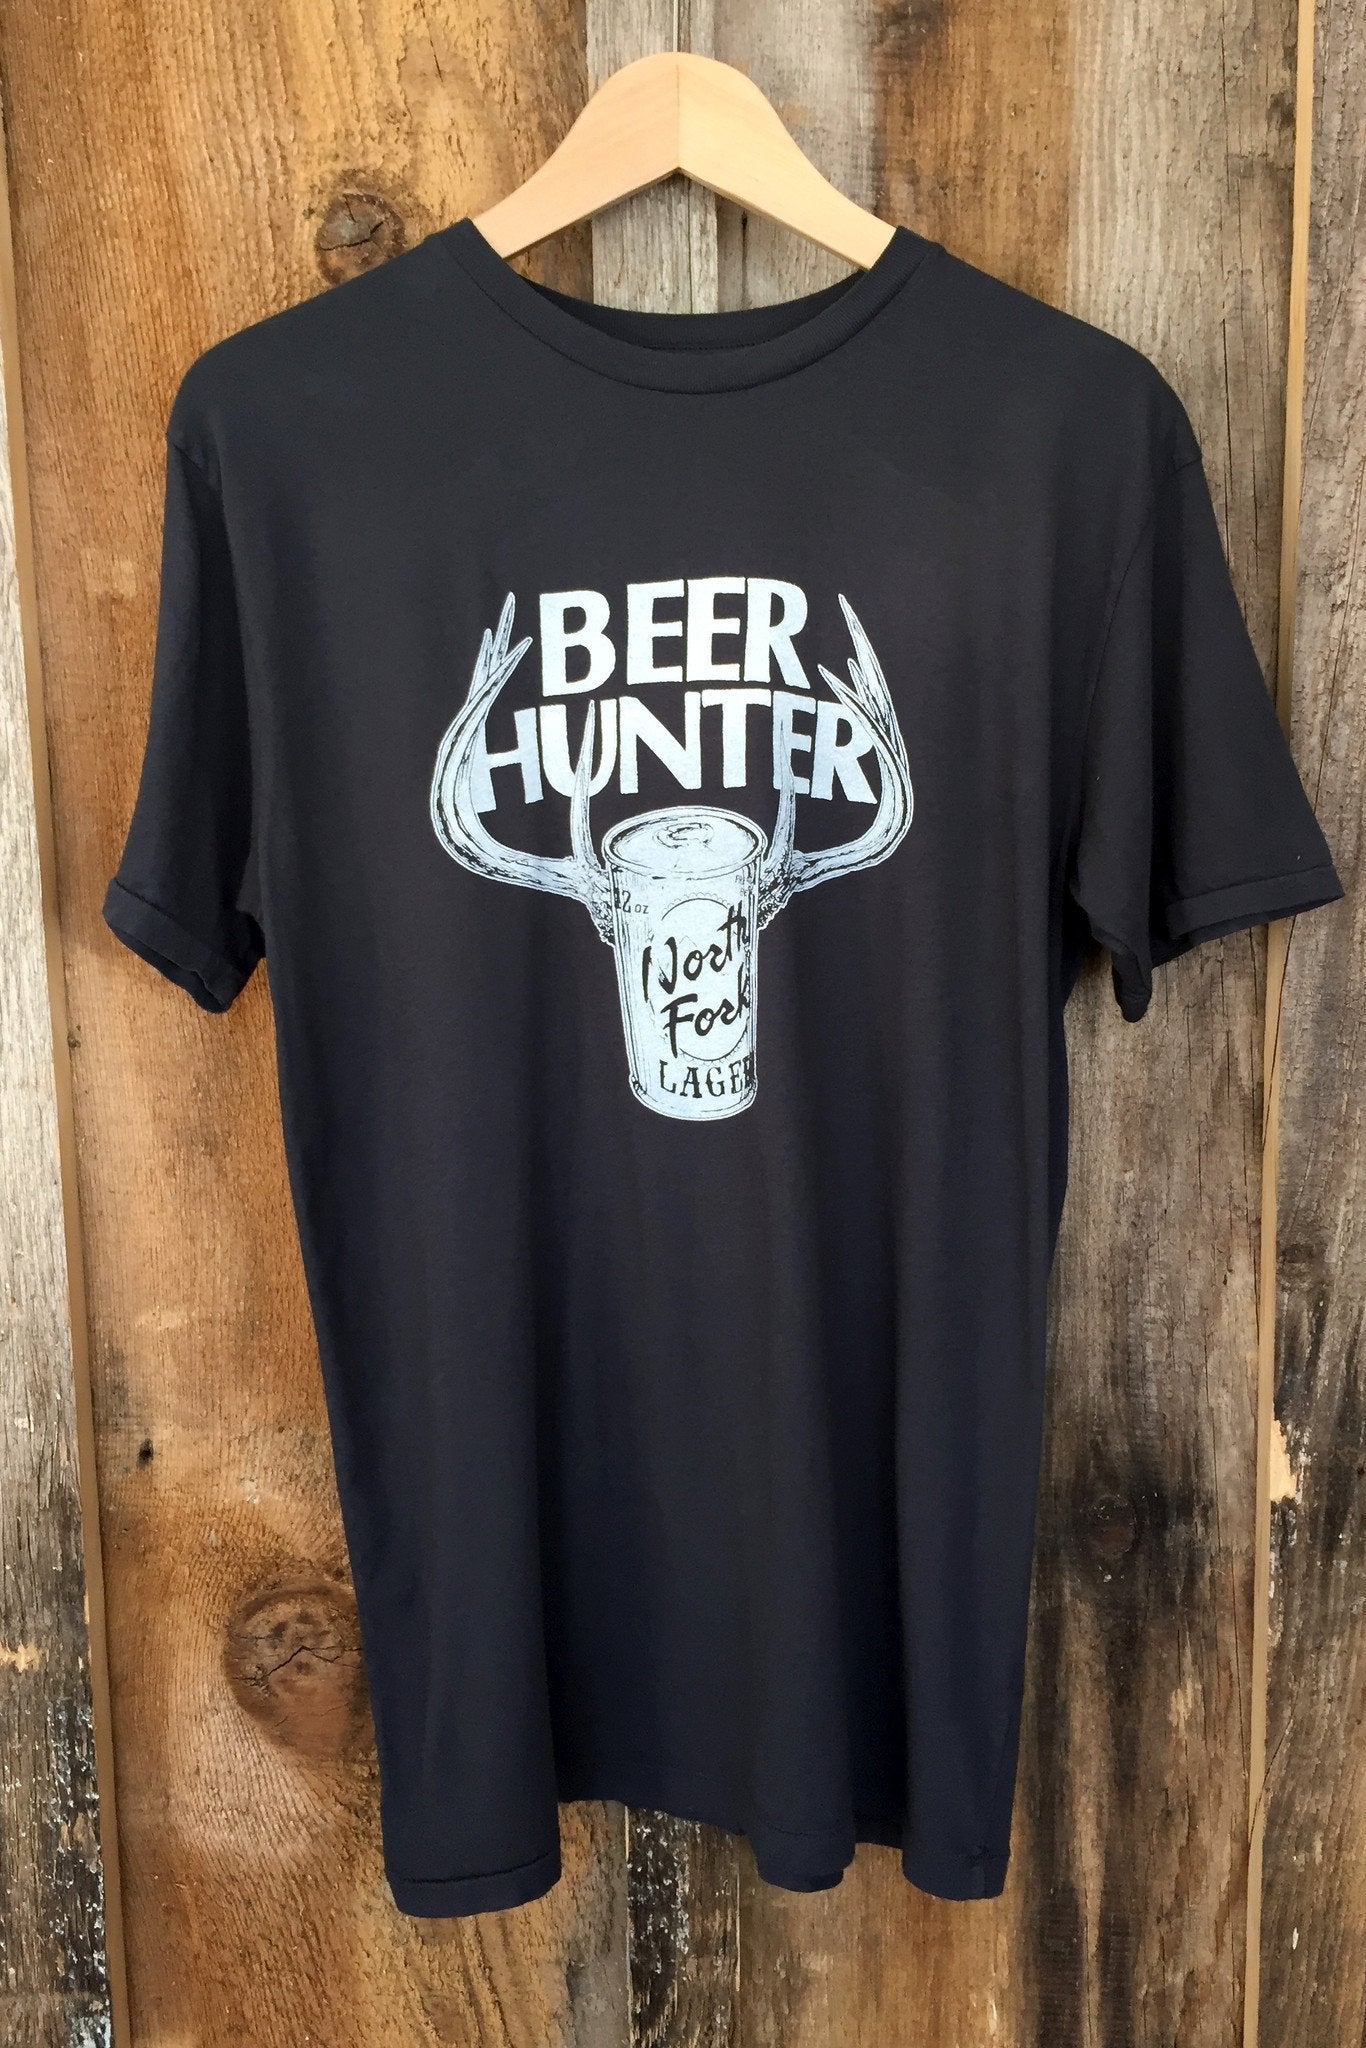 Beer Hunter Tee